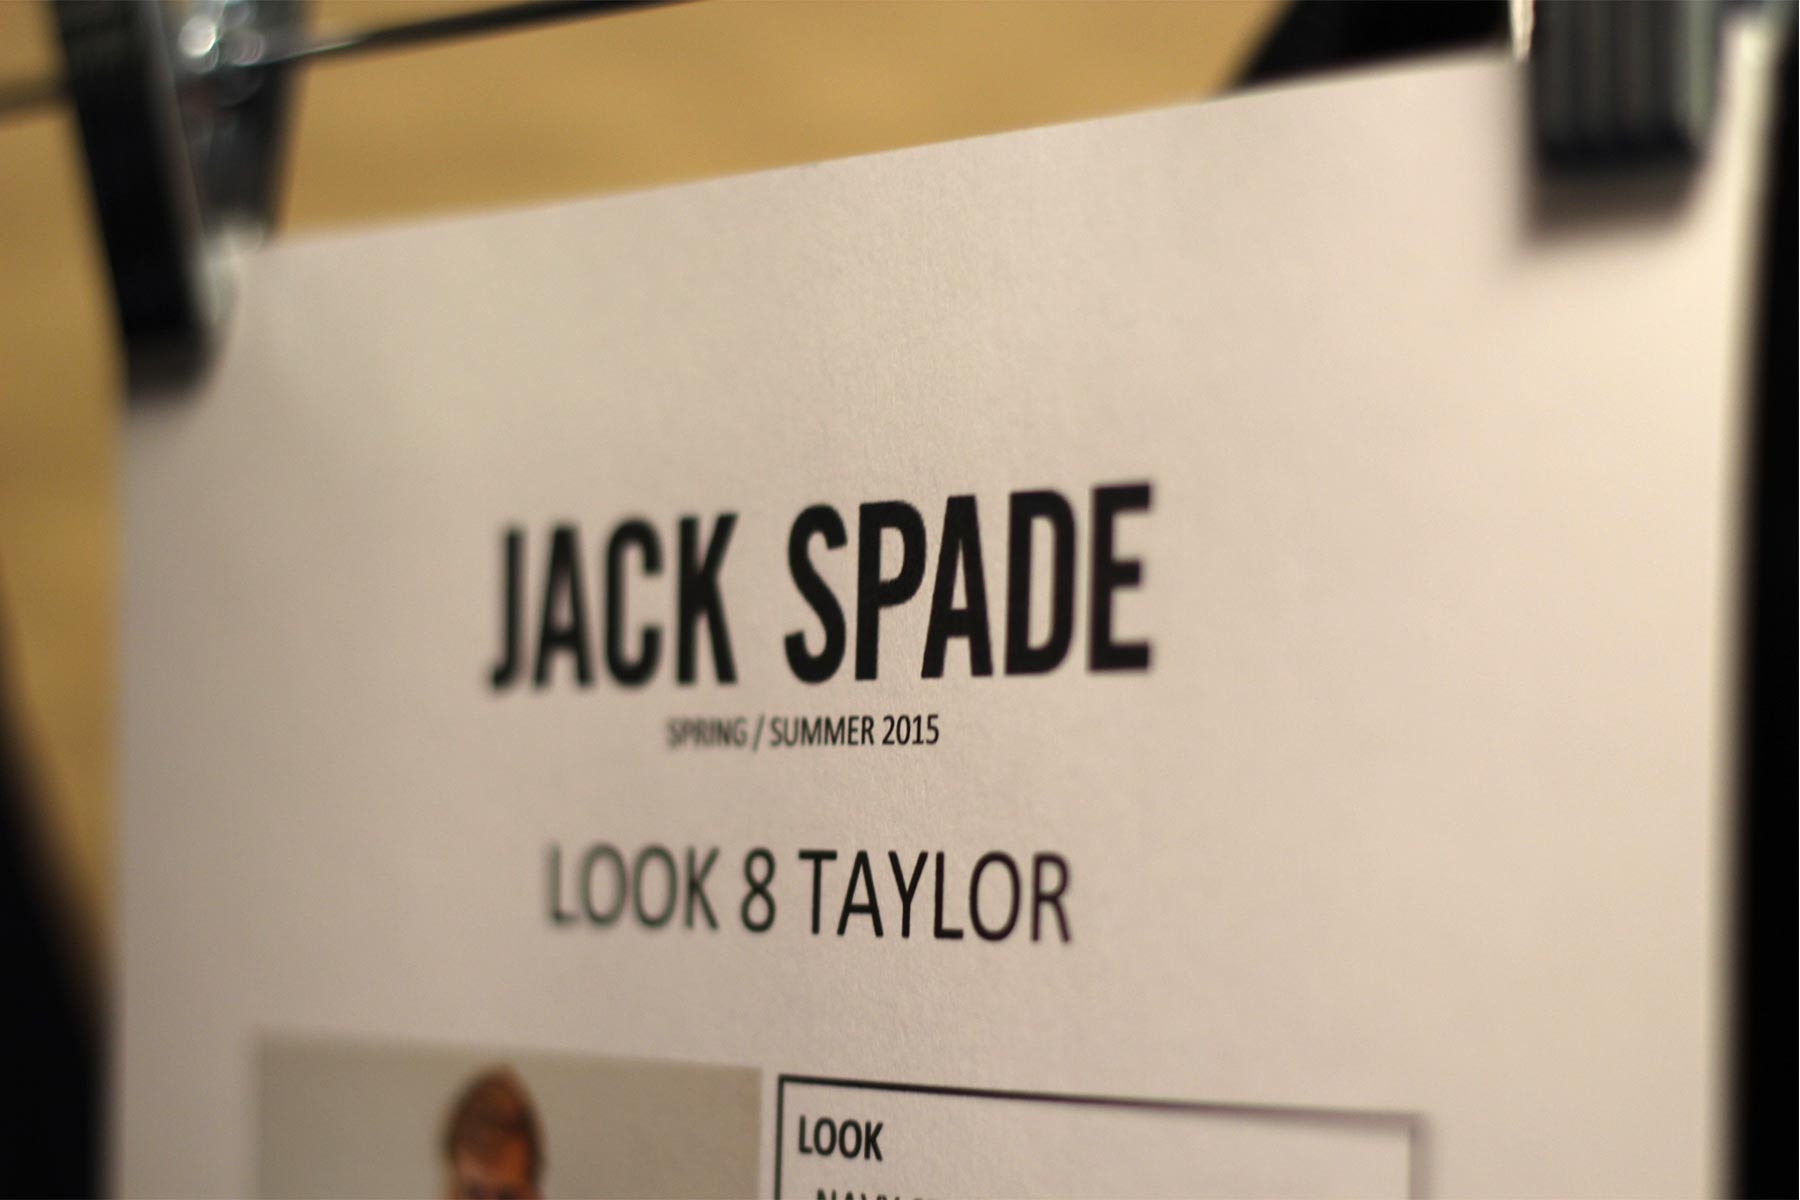 JACK SPADE S/S 2015 New York Fashion Week